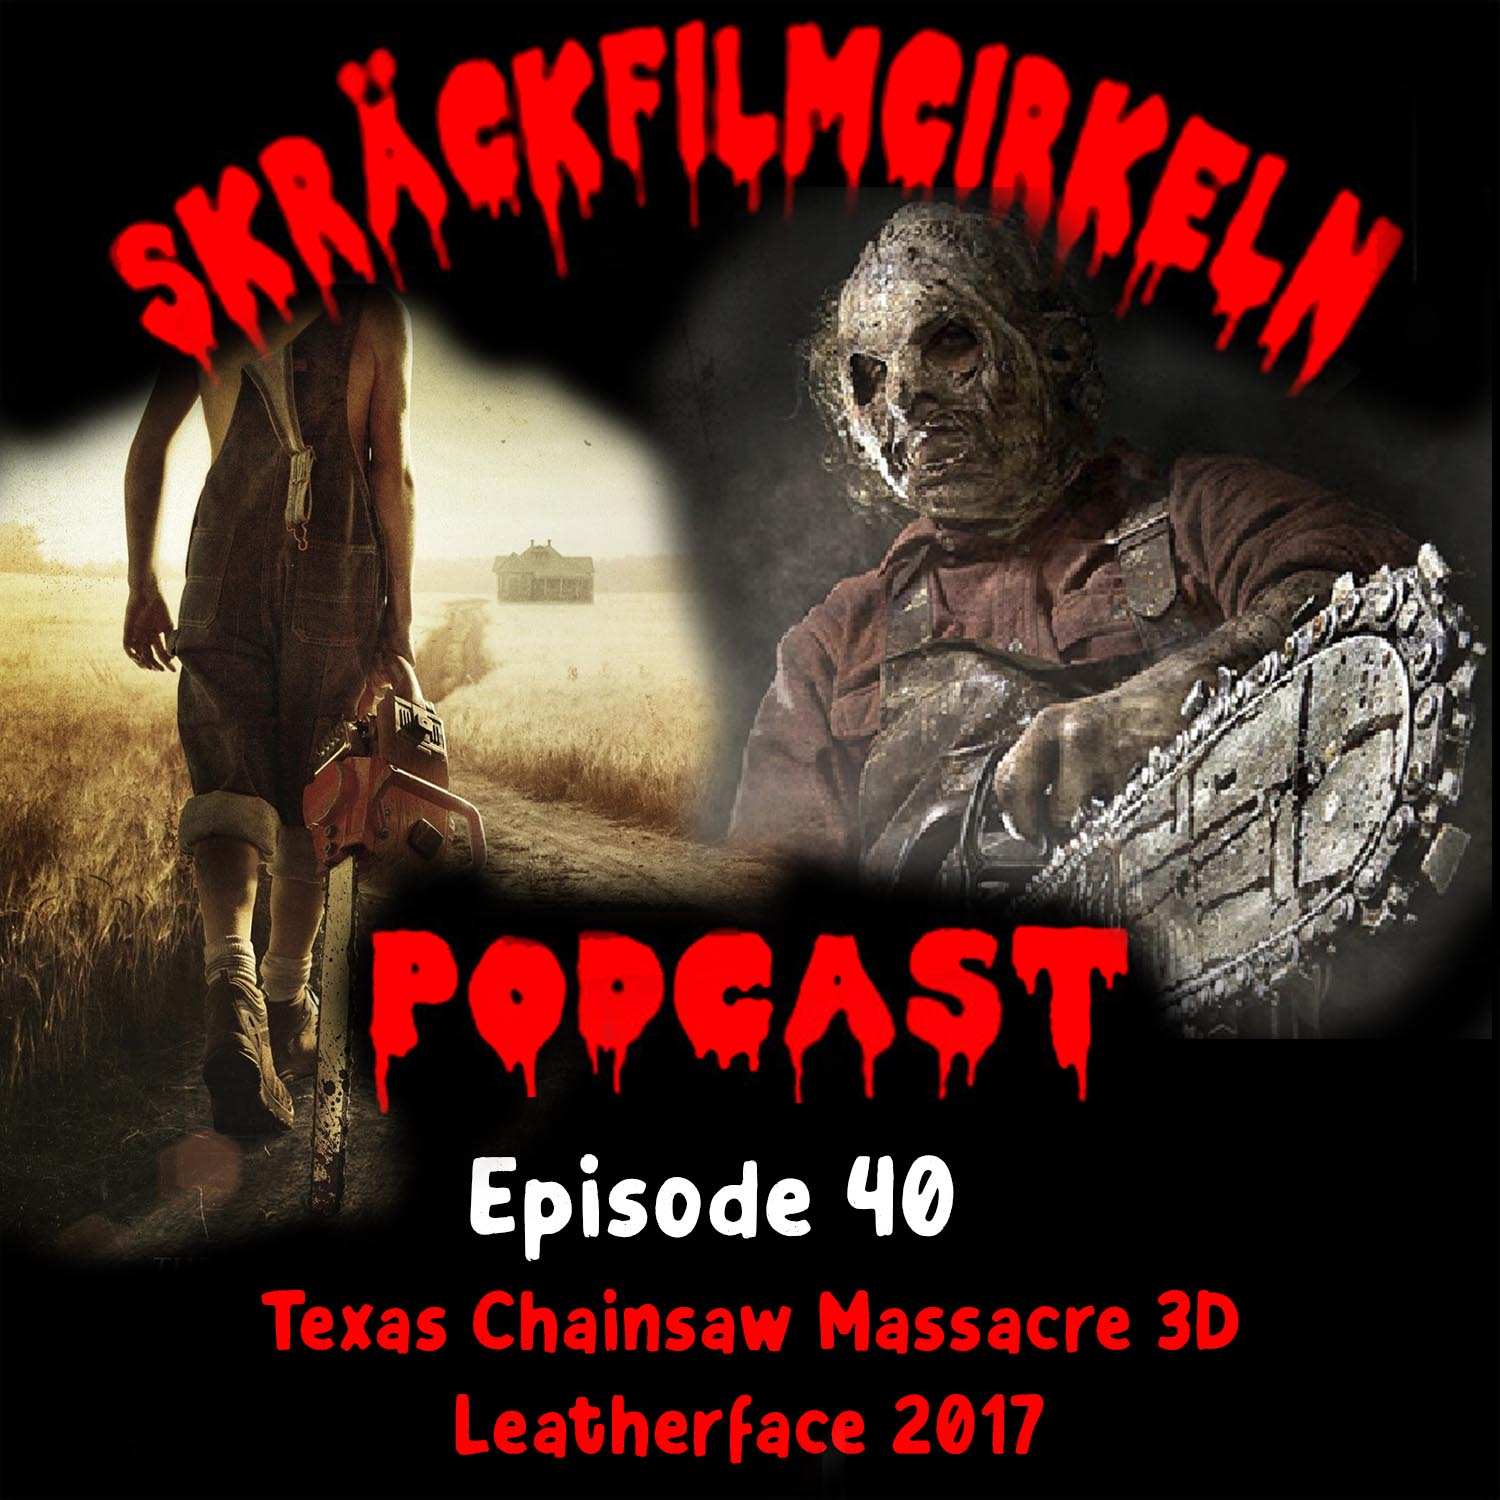 Episode 40 - Motorsågsmassakern 7&8 Double Bill